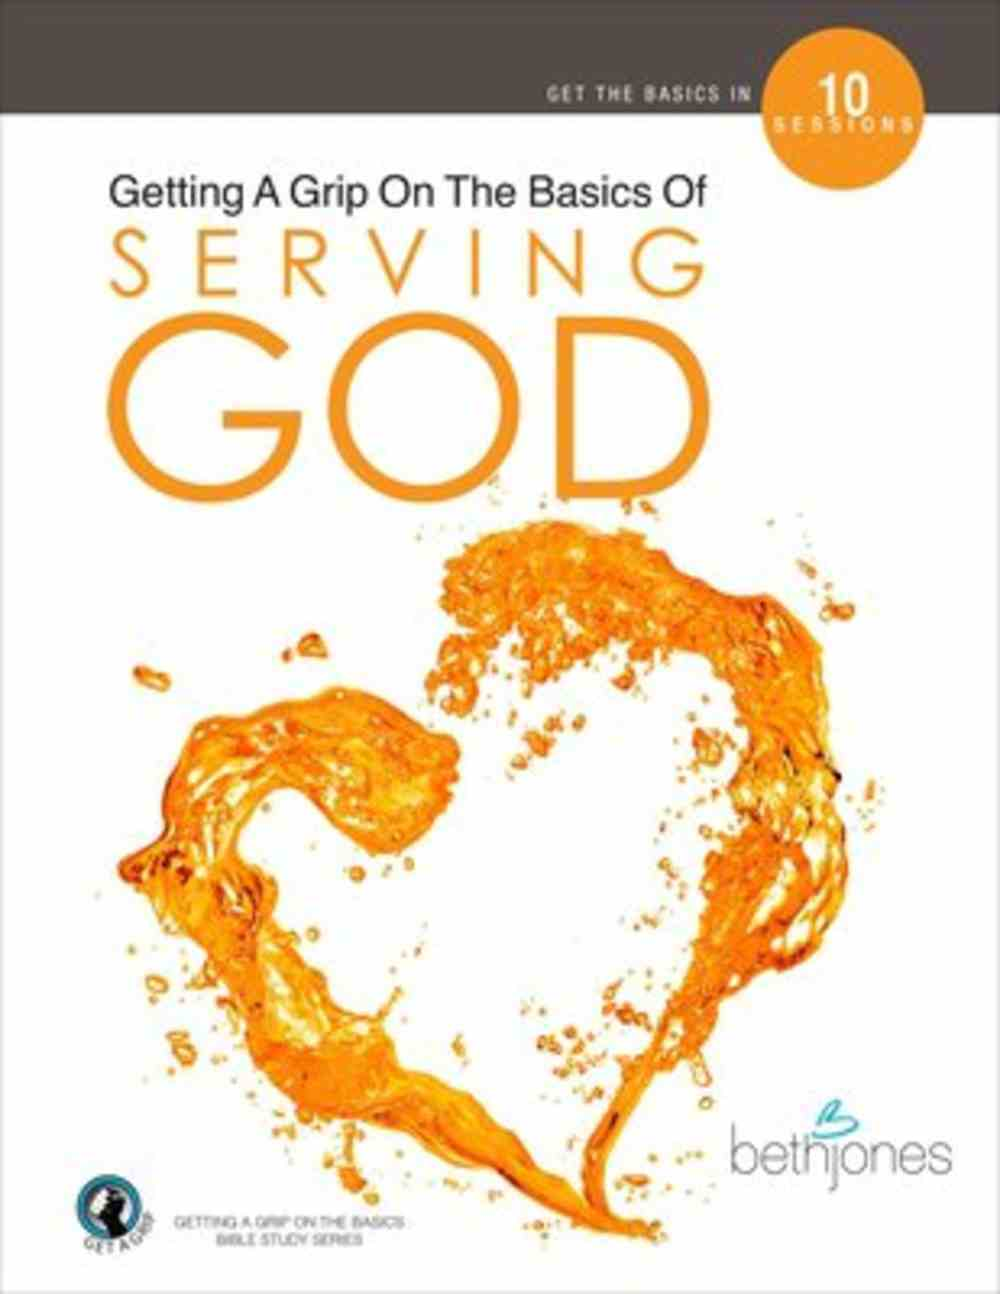 Serving God (10 Sessions) (Getting A Grip On The Bsaics Series) Paperback